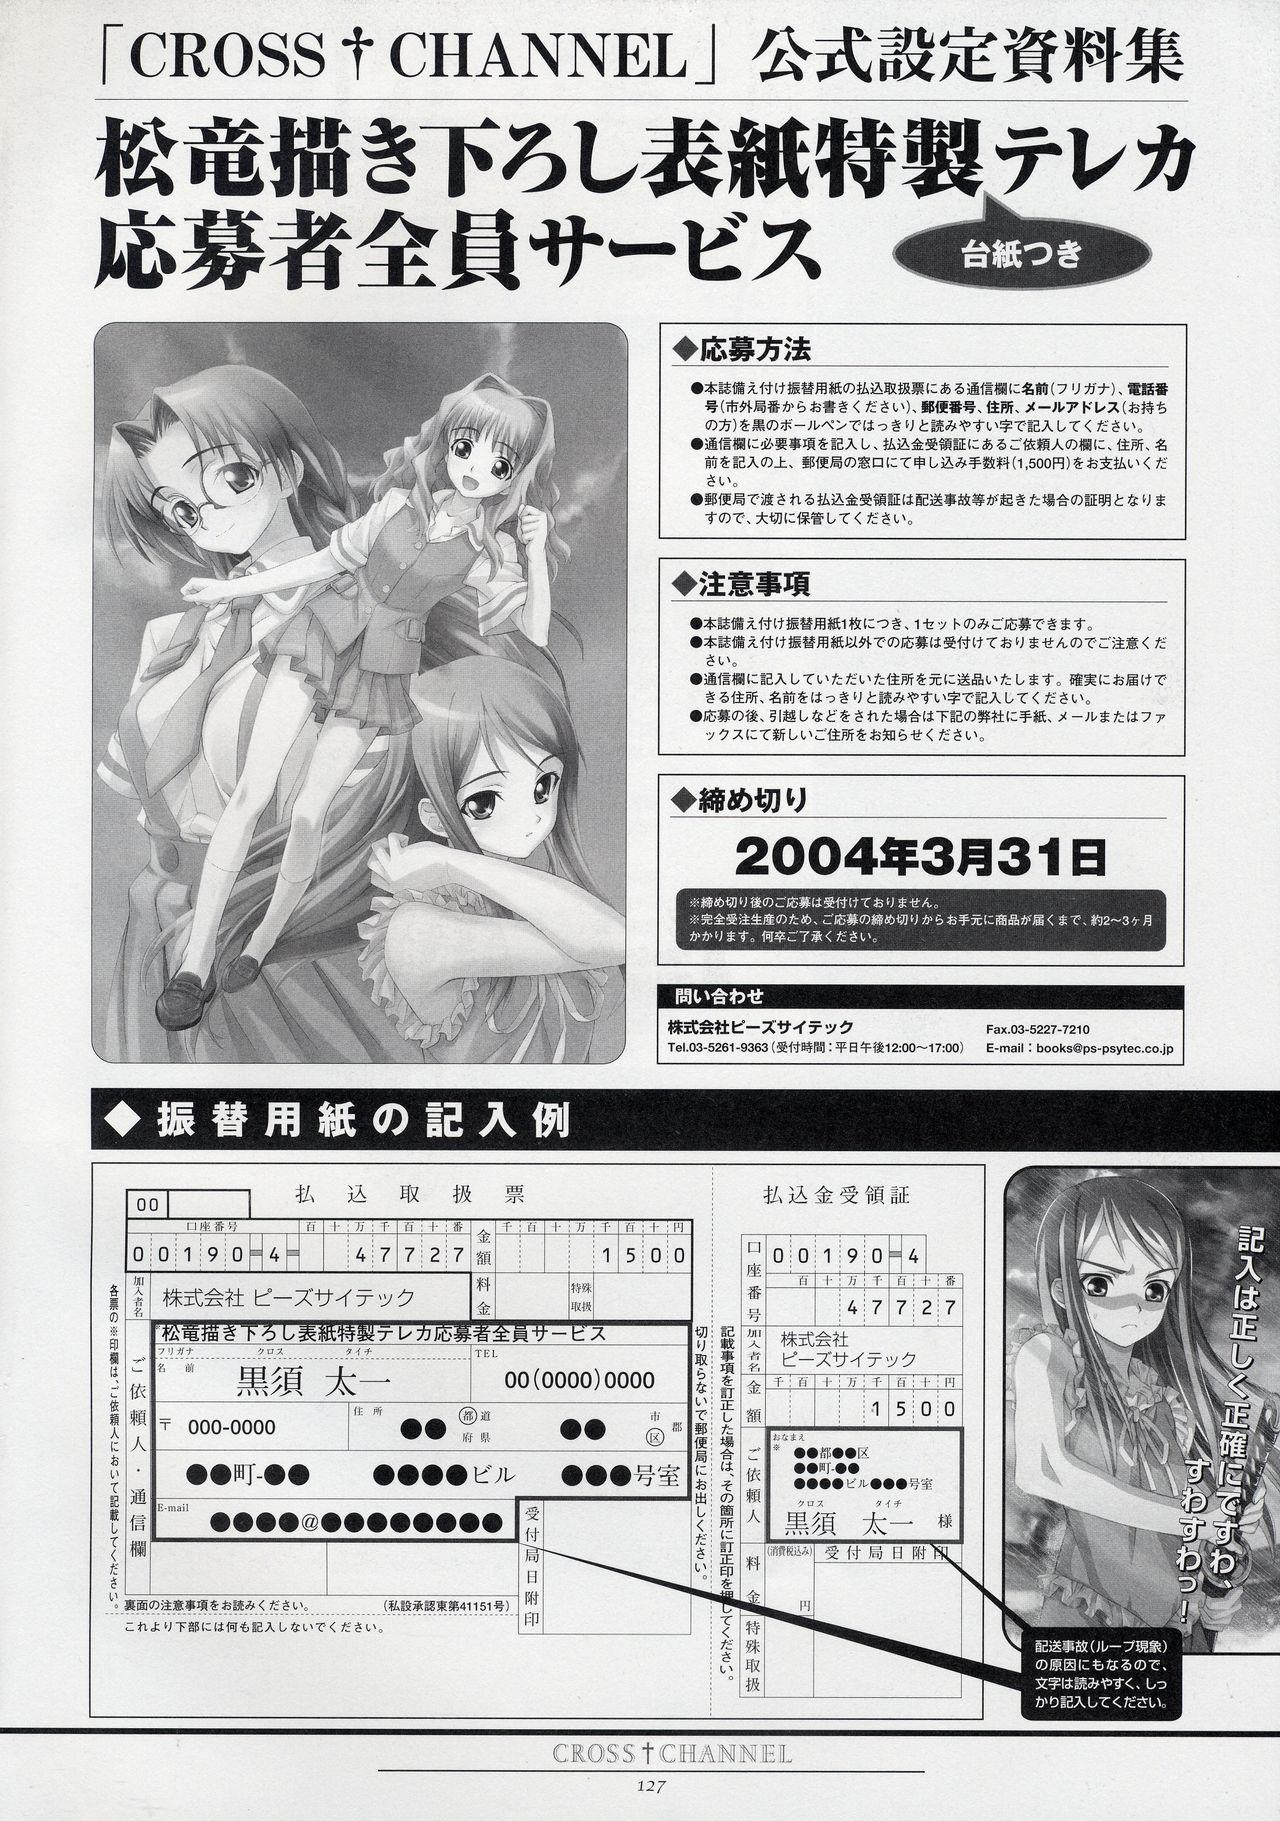 CROSS†CHANNEL Official Setting Materials 137